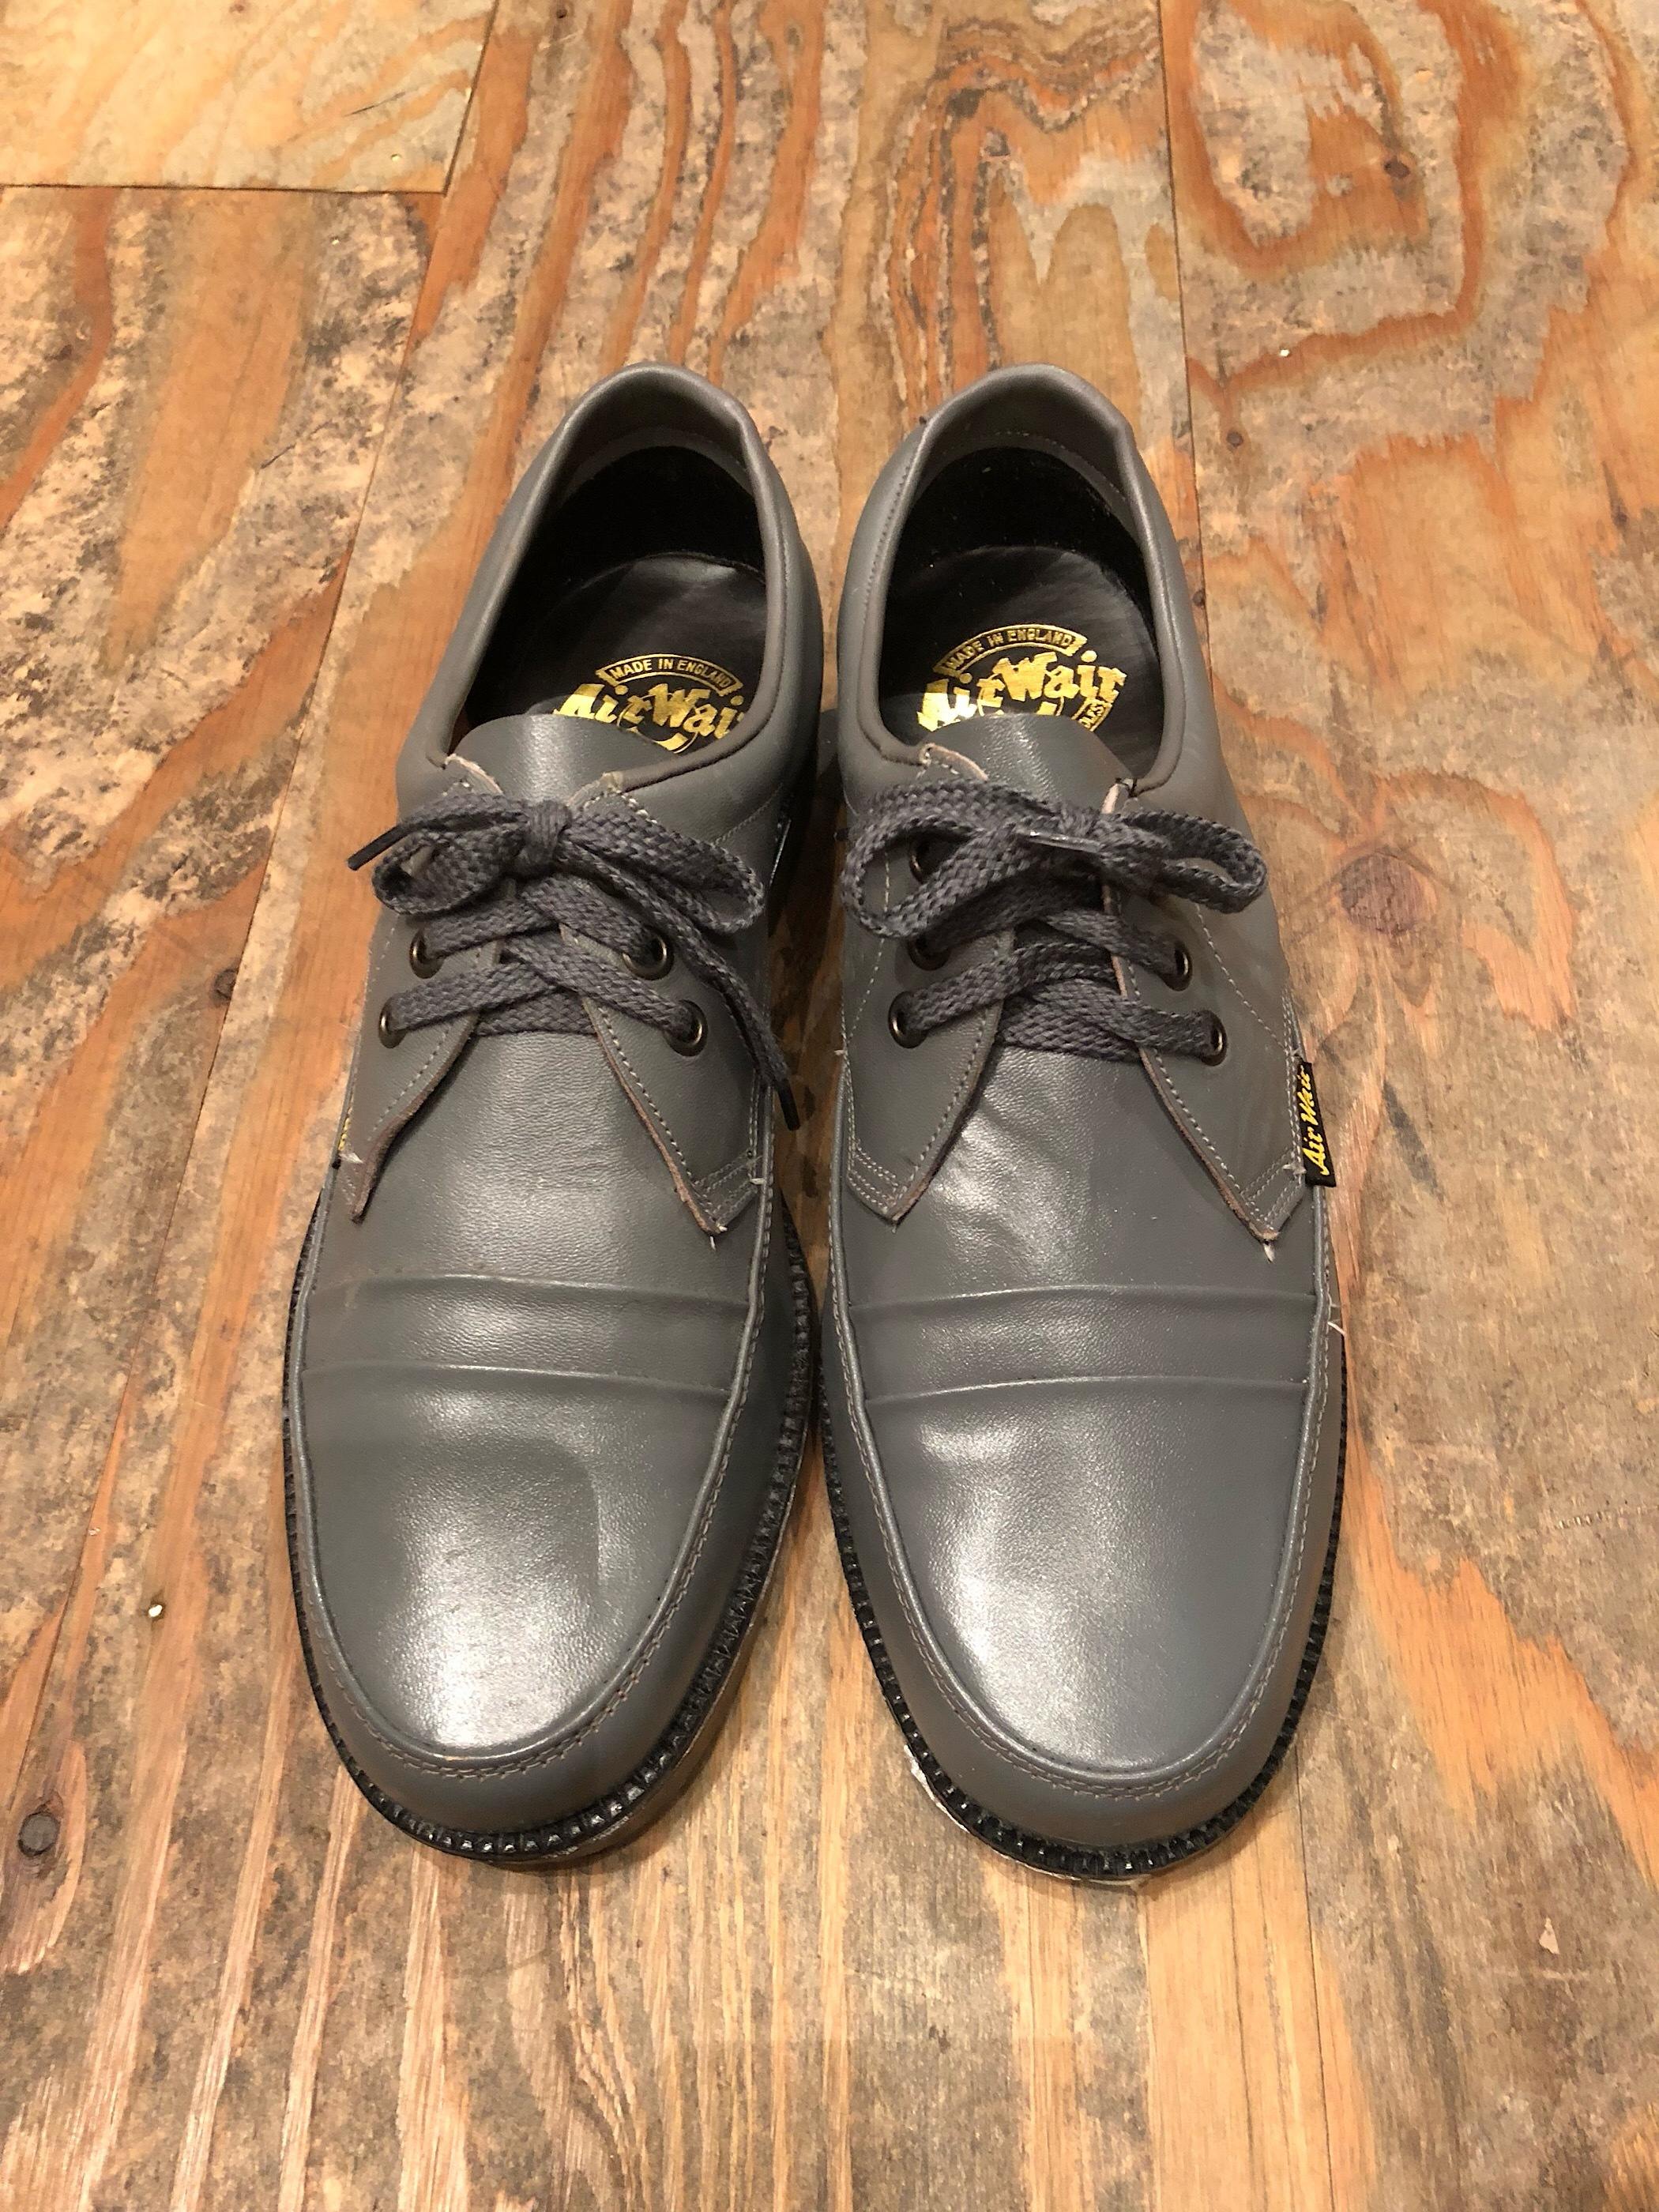 1960s Deadstock Dr.martin leather shoes